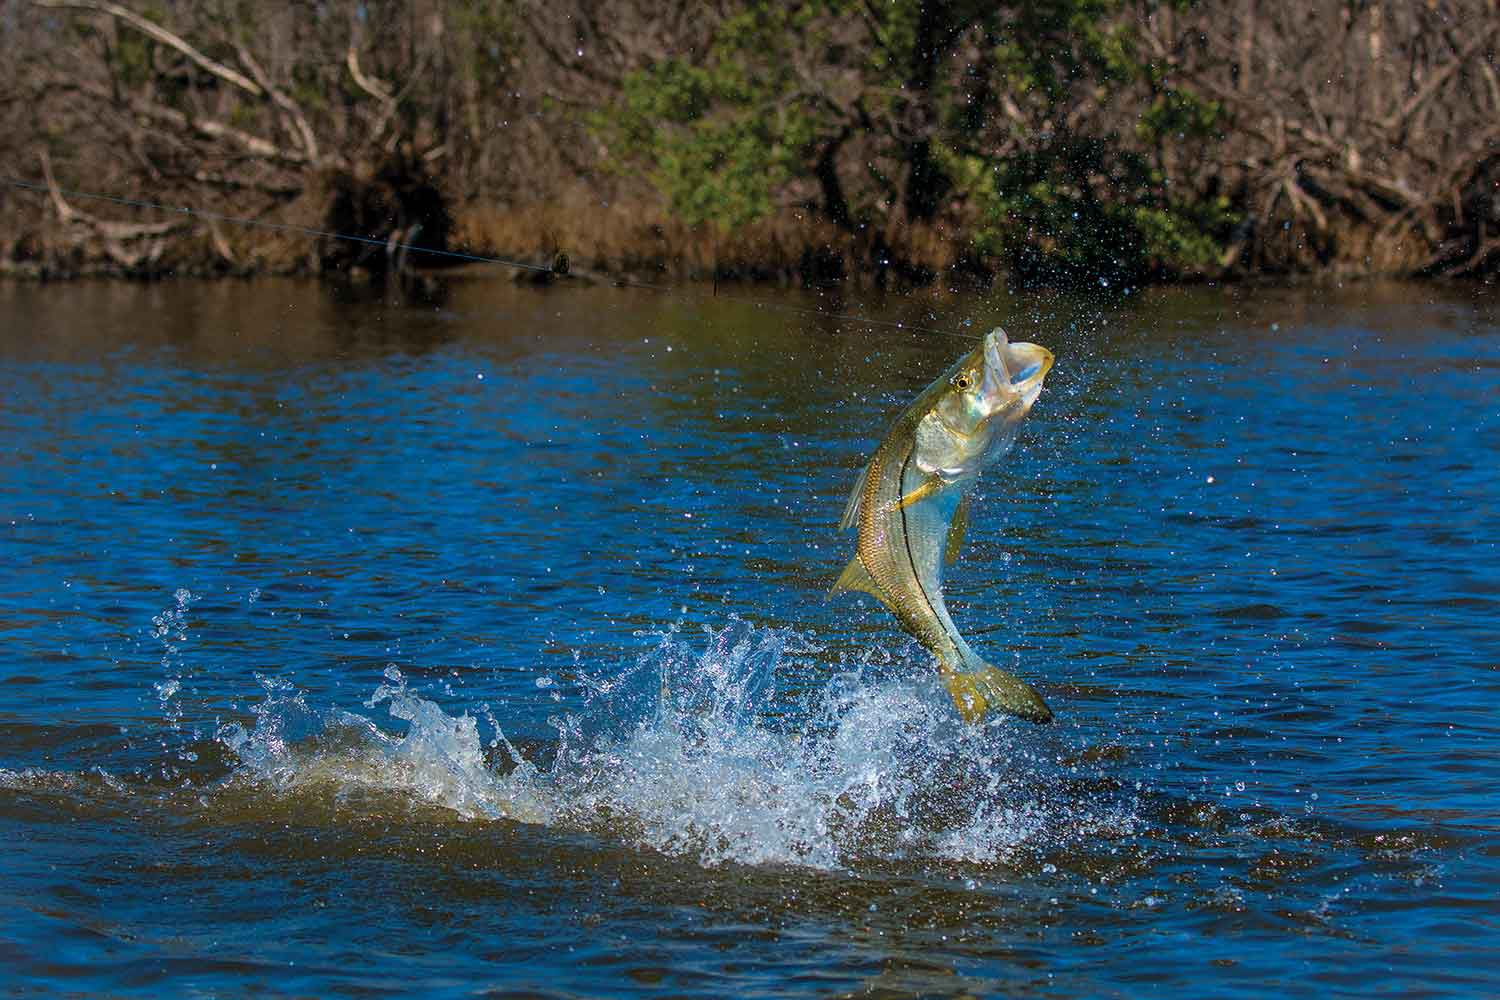 Snook ambush tactics depend heavily on submerged cover.